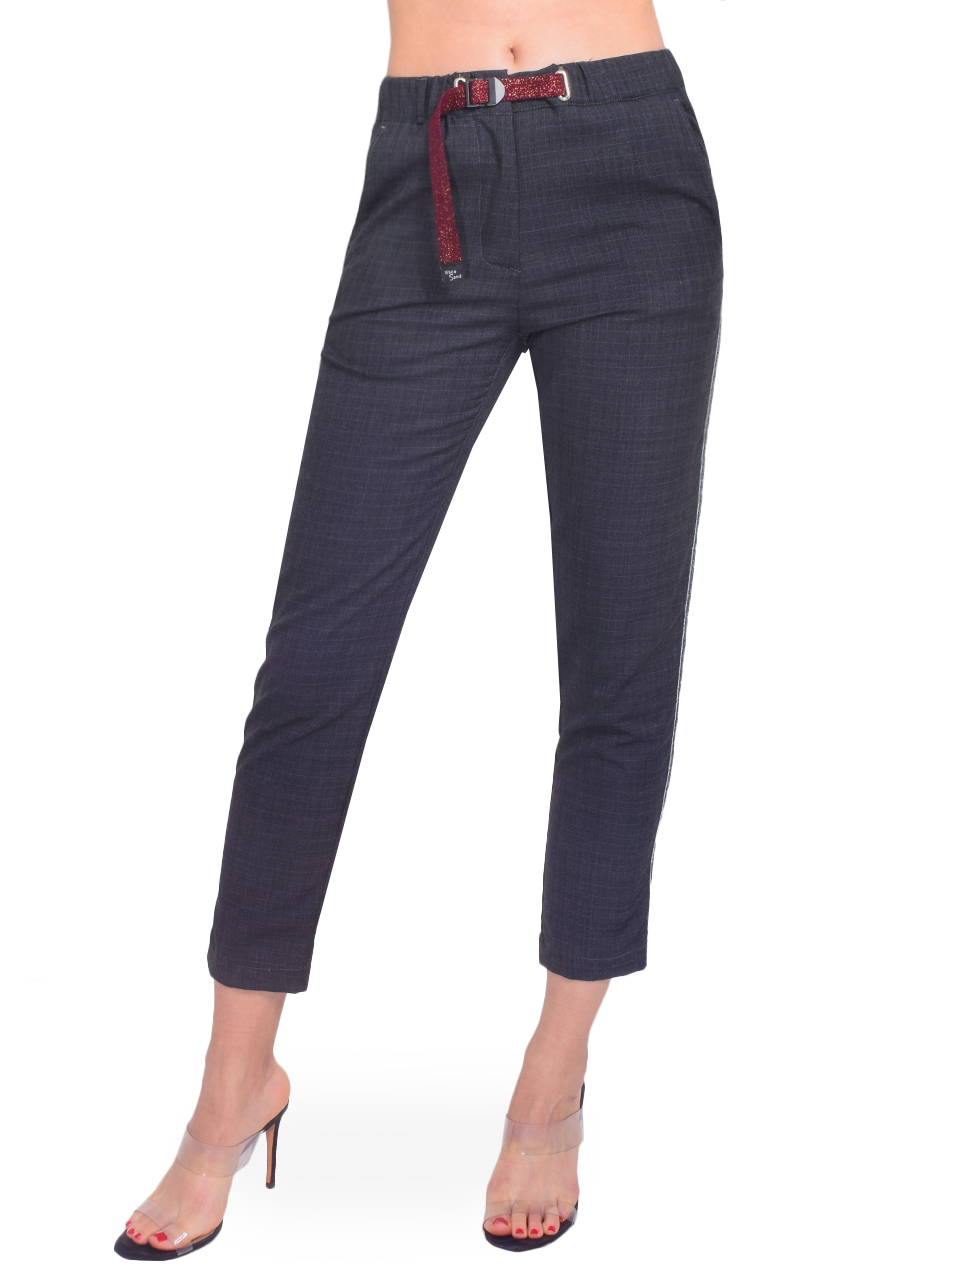 WHITE SAND Angelina Pant in Grey Plaid Front View X1https://cdn11.bigcommerce.com/s-3wu6n/products/33466/images/110653/90__18163.1602550108.244.365.jpg?c=2X2